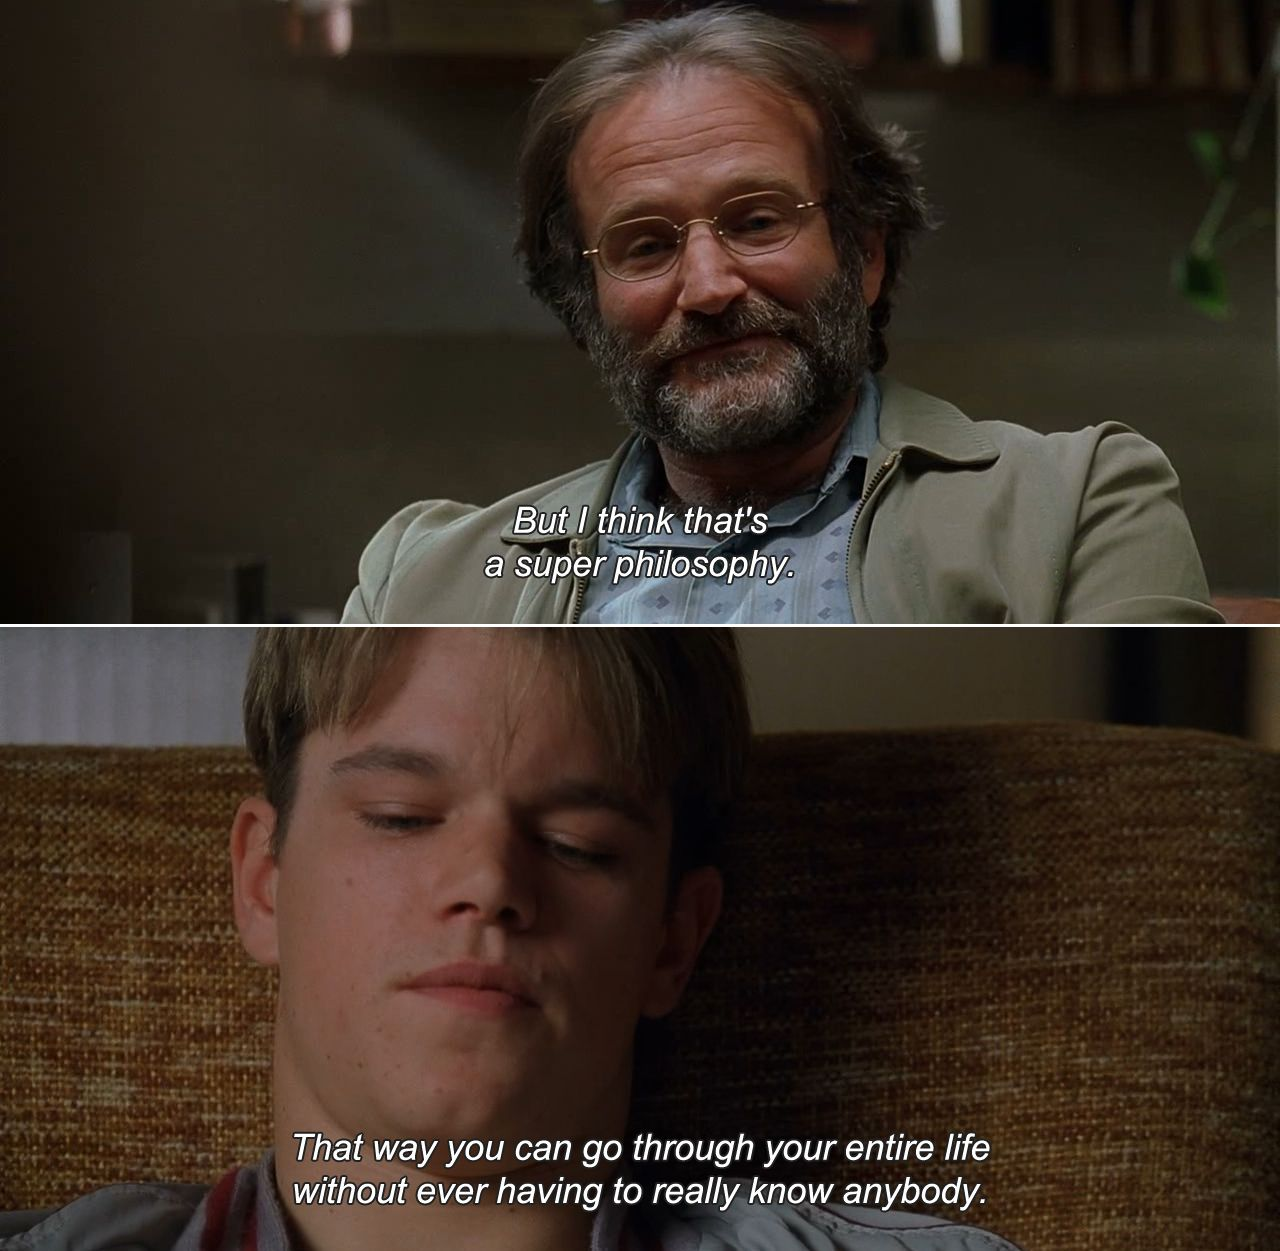 good will hunting ‎watch trailers, read customer and critic reviews, and buy good will hunting directed by gus van sant for $499 ‎watch trailers, read customer and critic reviews, and buy good will hunting directed by gus van sant for $499.